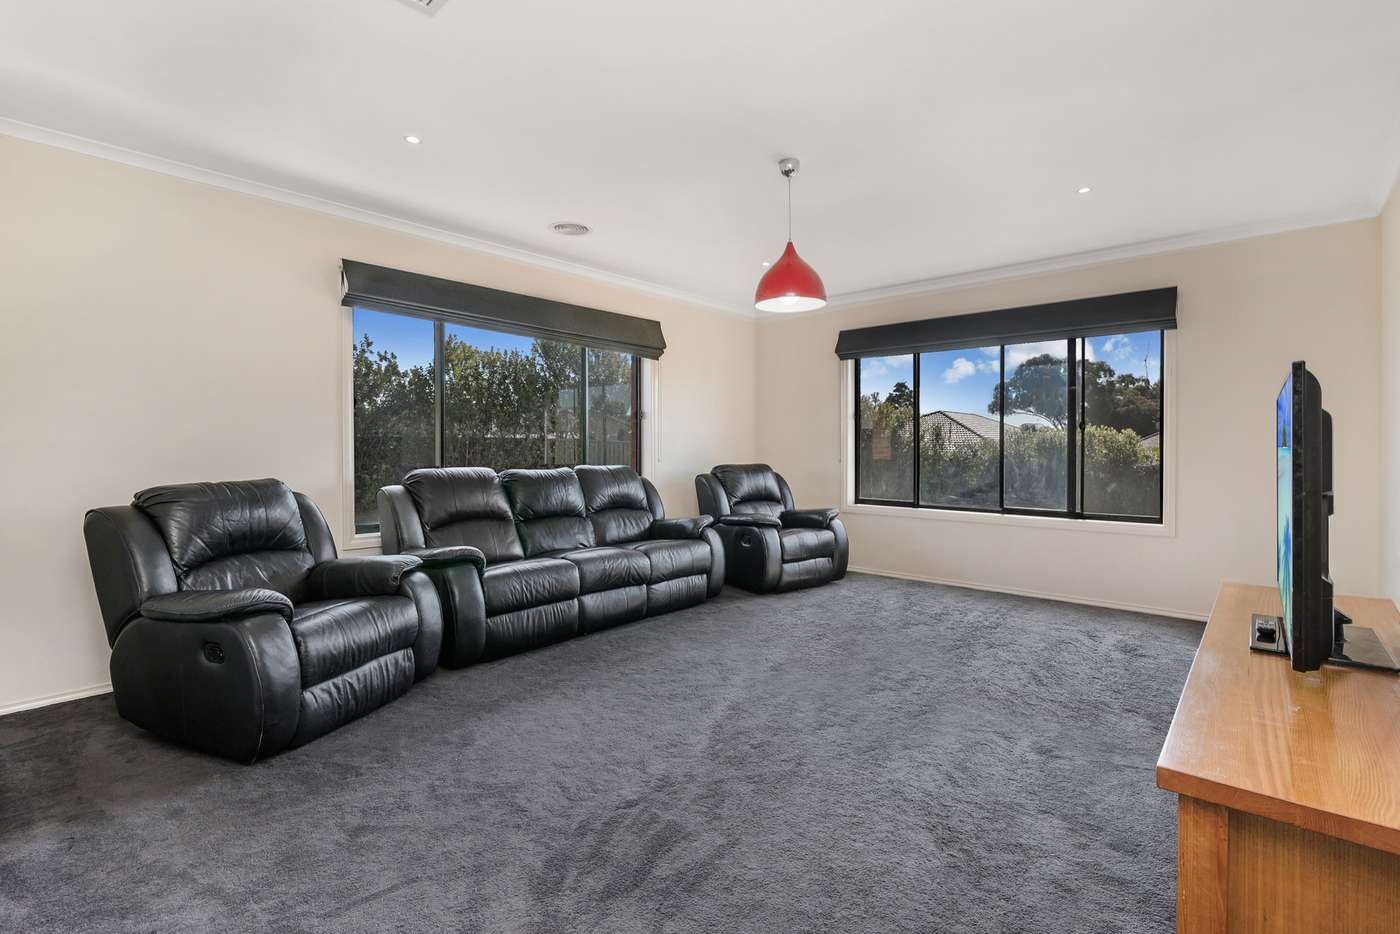 Fifth view of Homely house listing, 16 Rachel Terrace, Maiden Gully VIC 3551